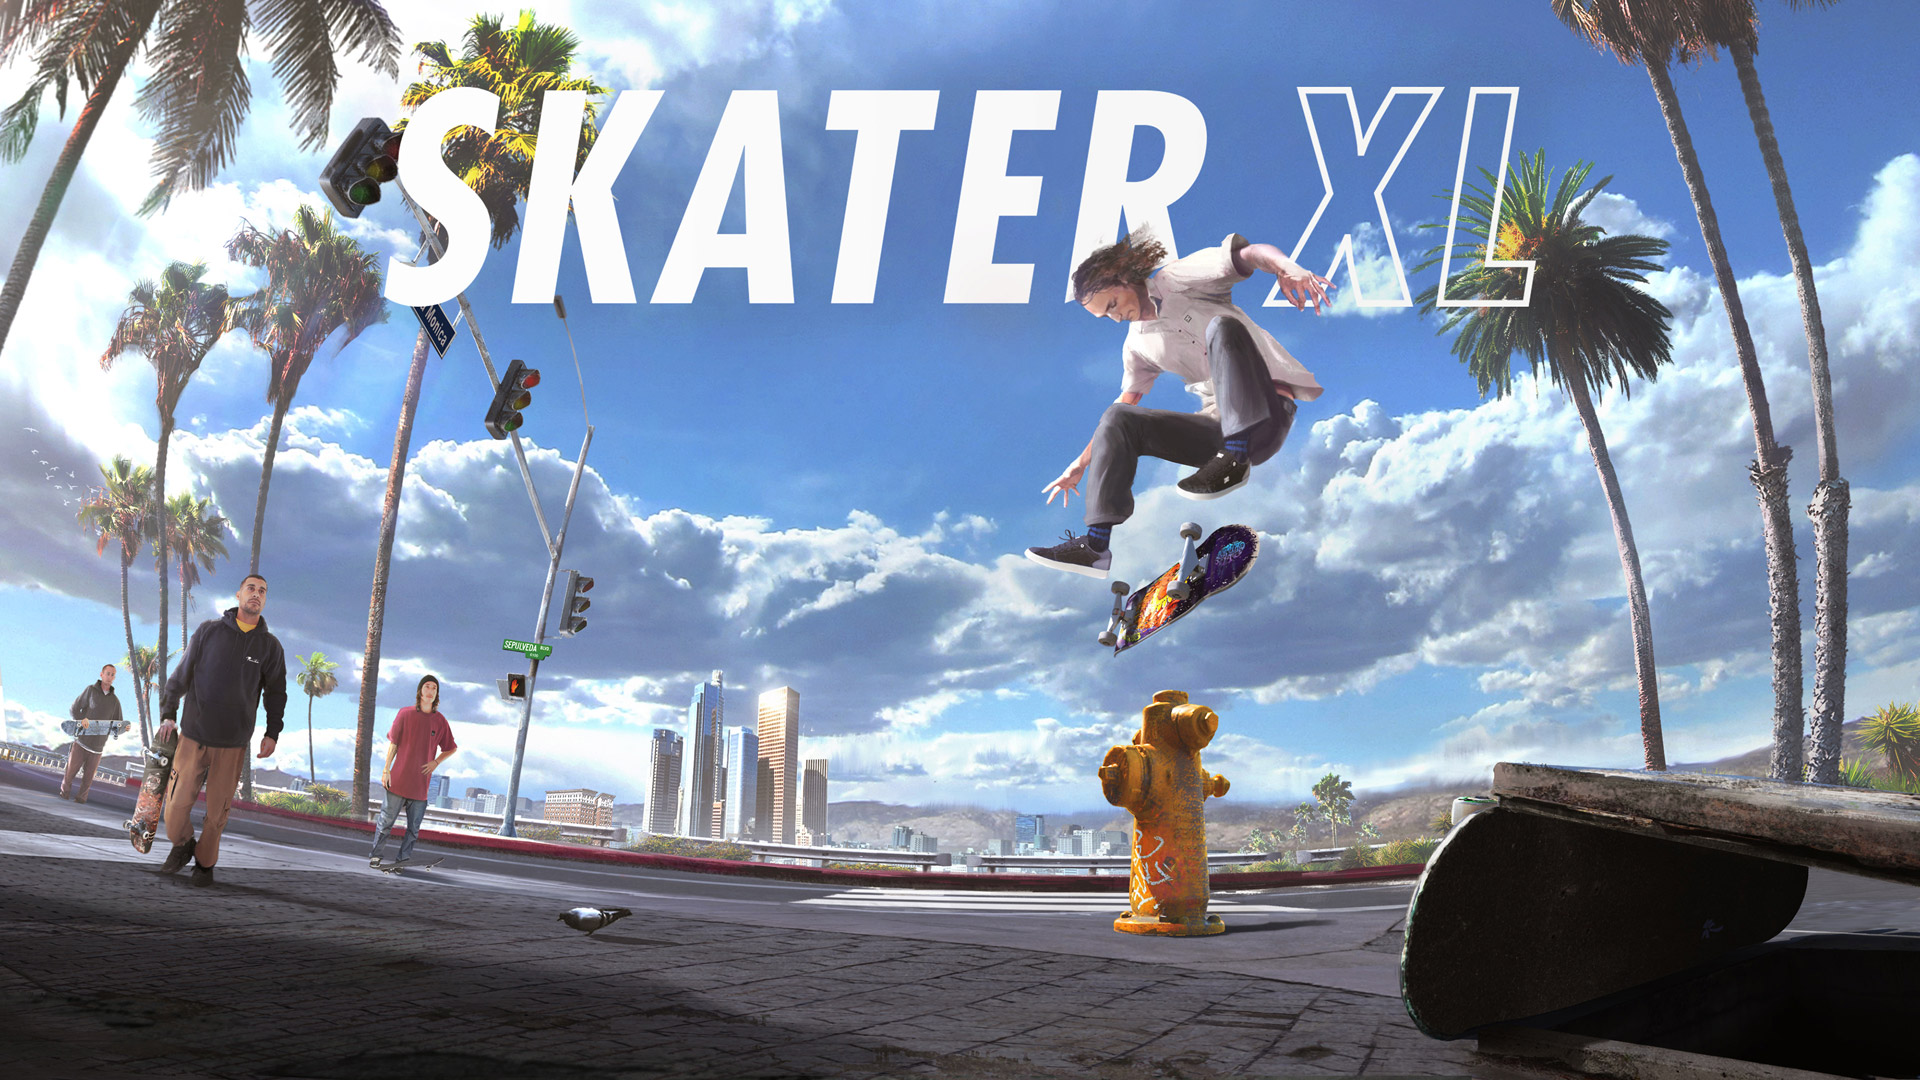 Free Skater XL Wallpaper in 1920x1080